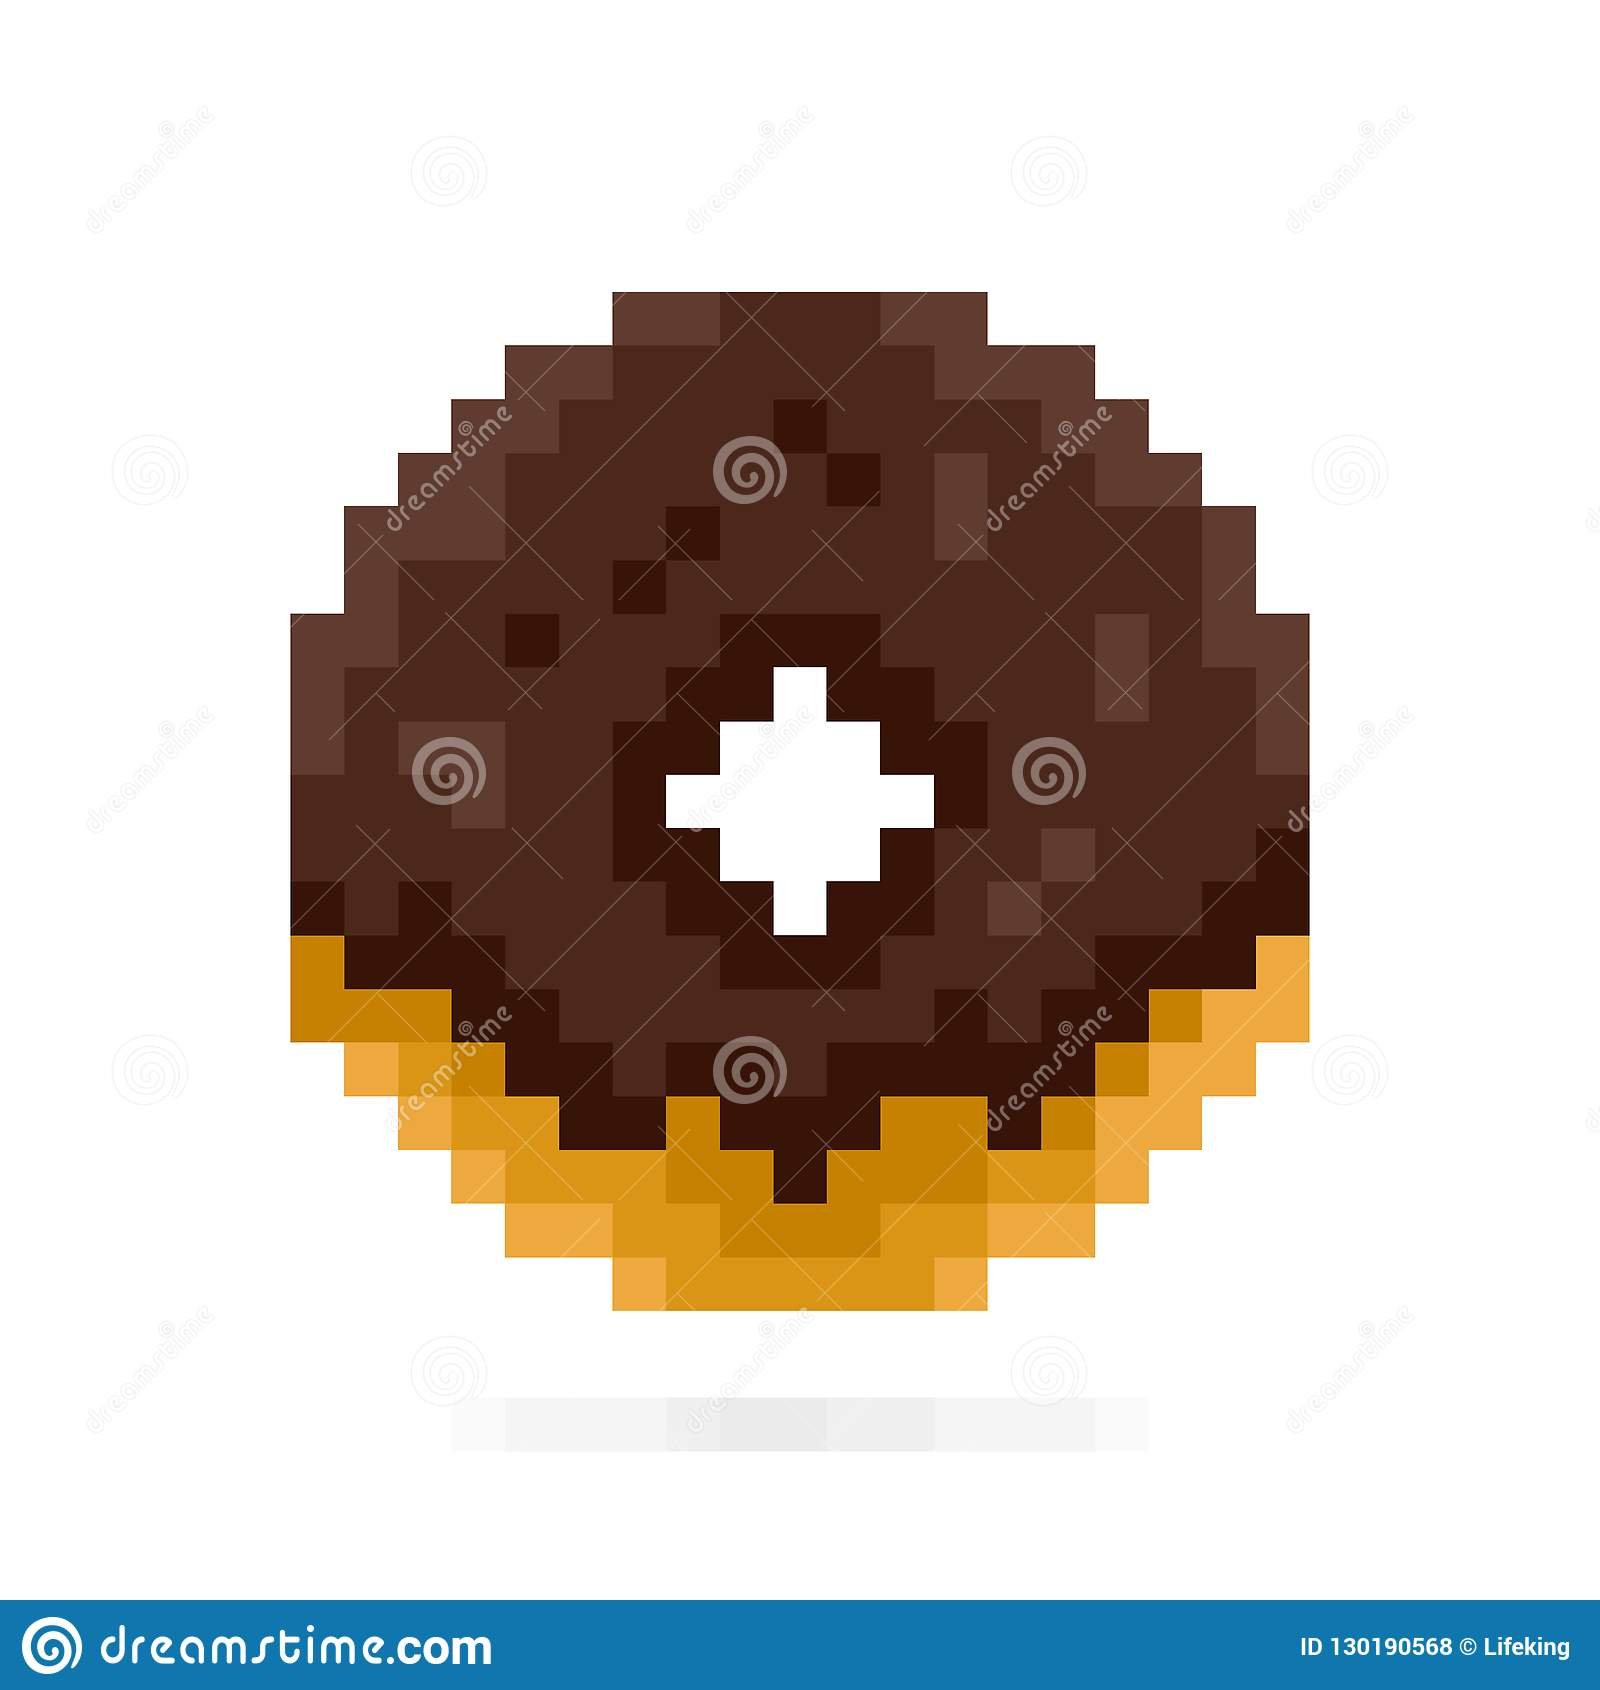 Colored Donuts Symbol Or Icon In Pixel Art Design